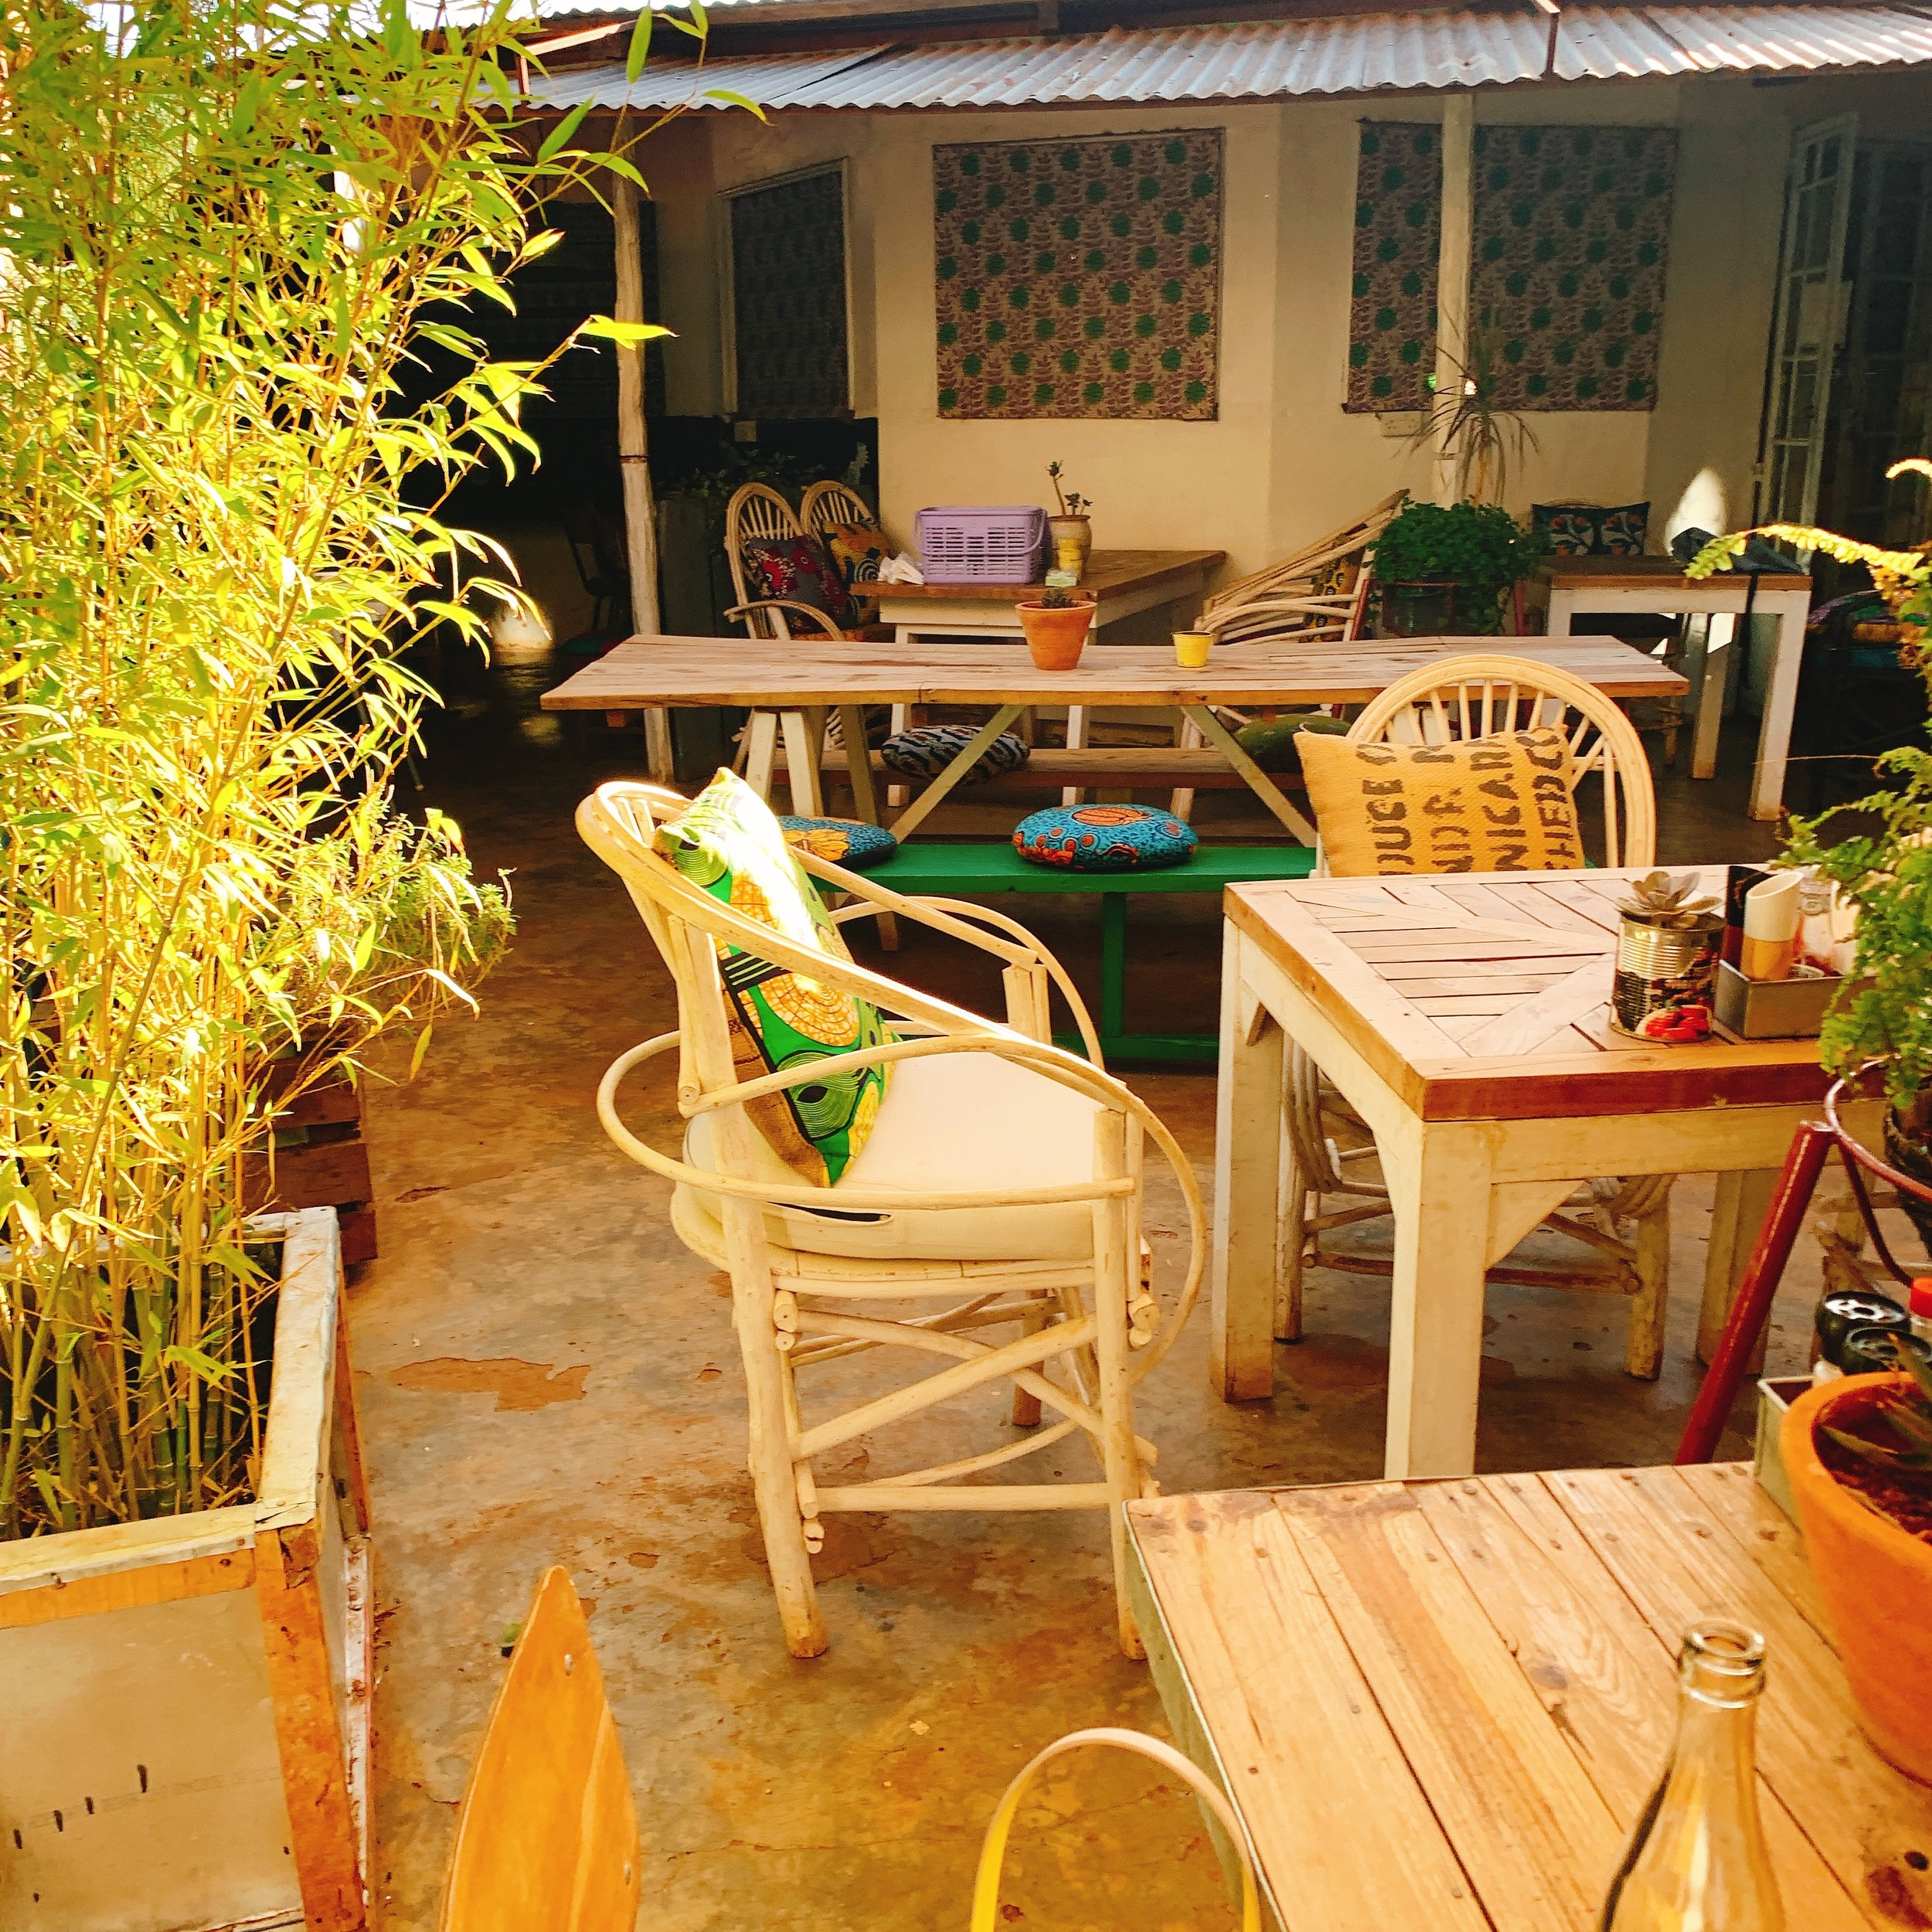 Wasp & Sprout cafe, Nairobi